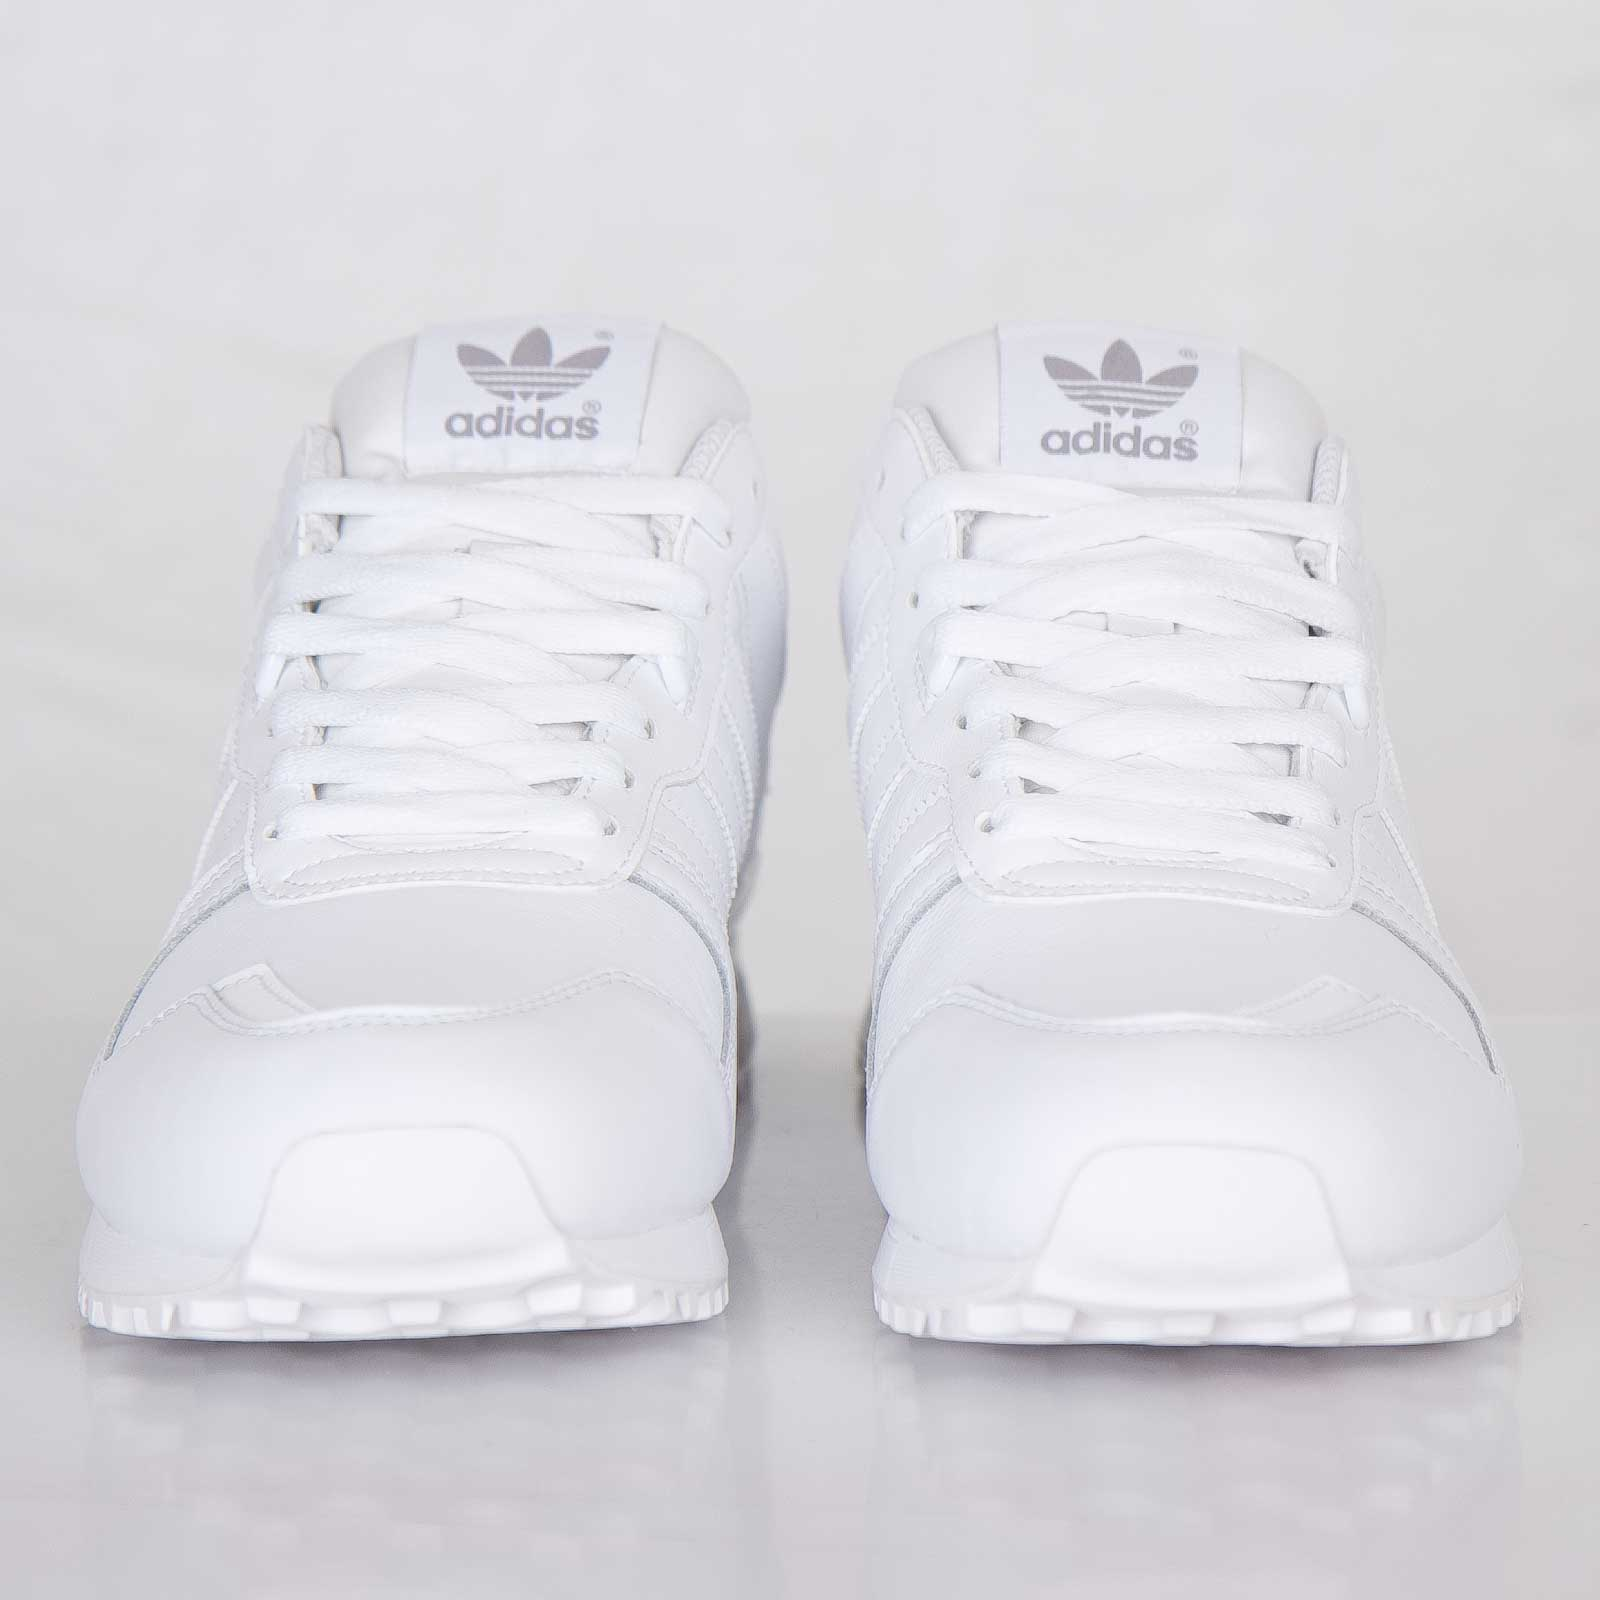 adidas originals zx 700 white